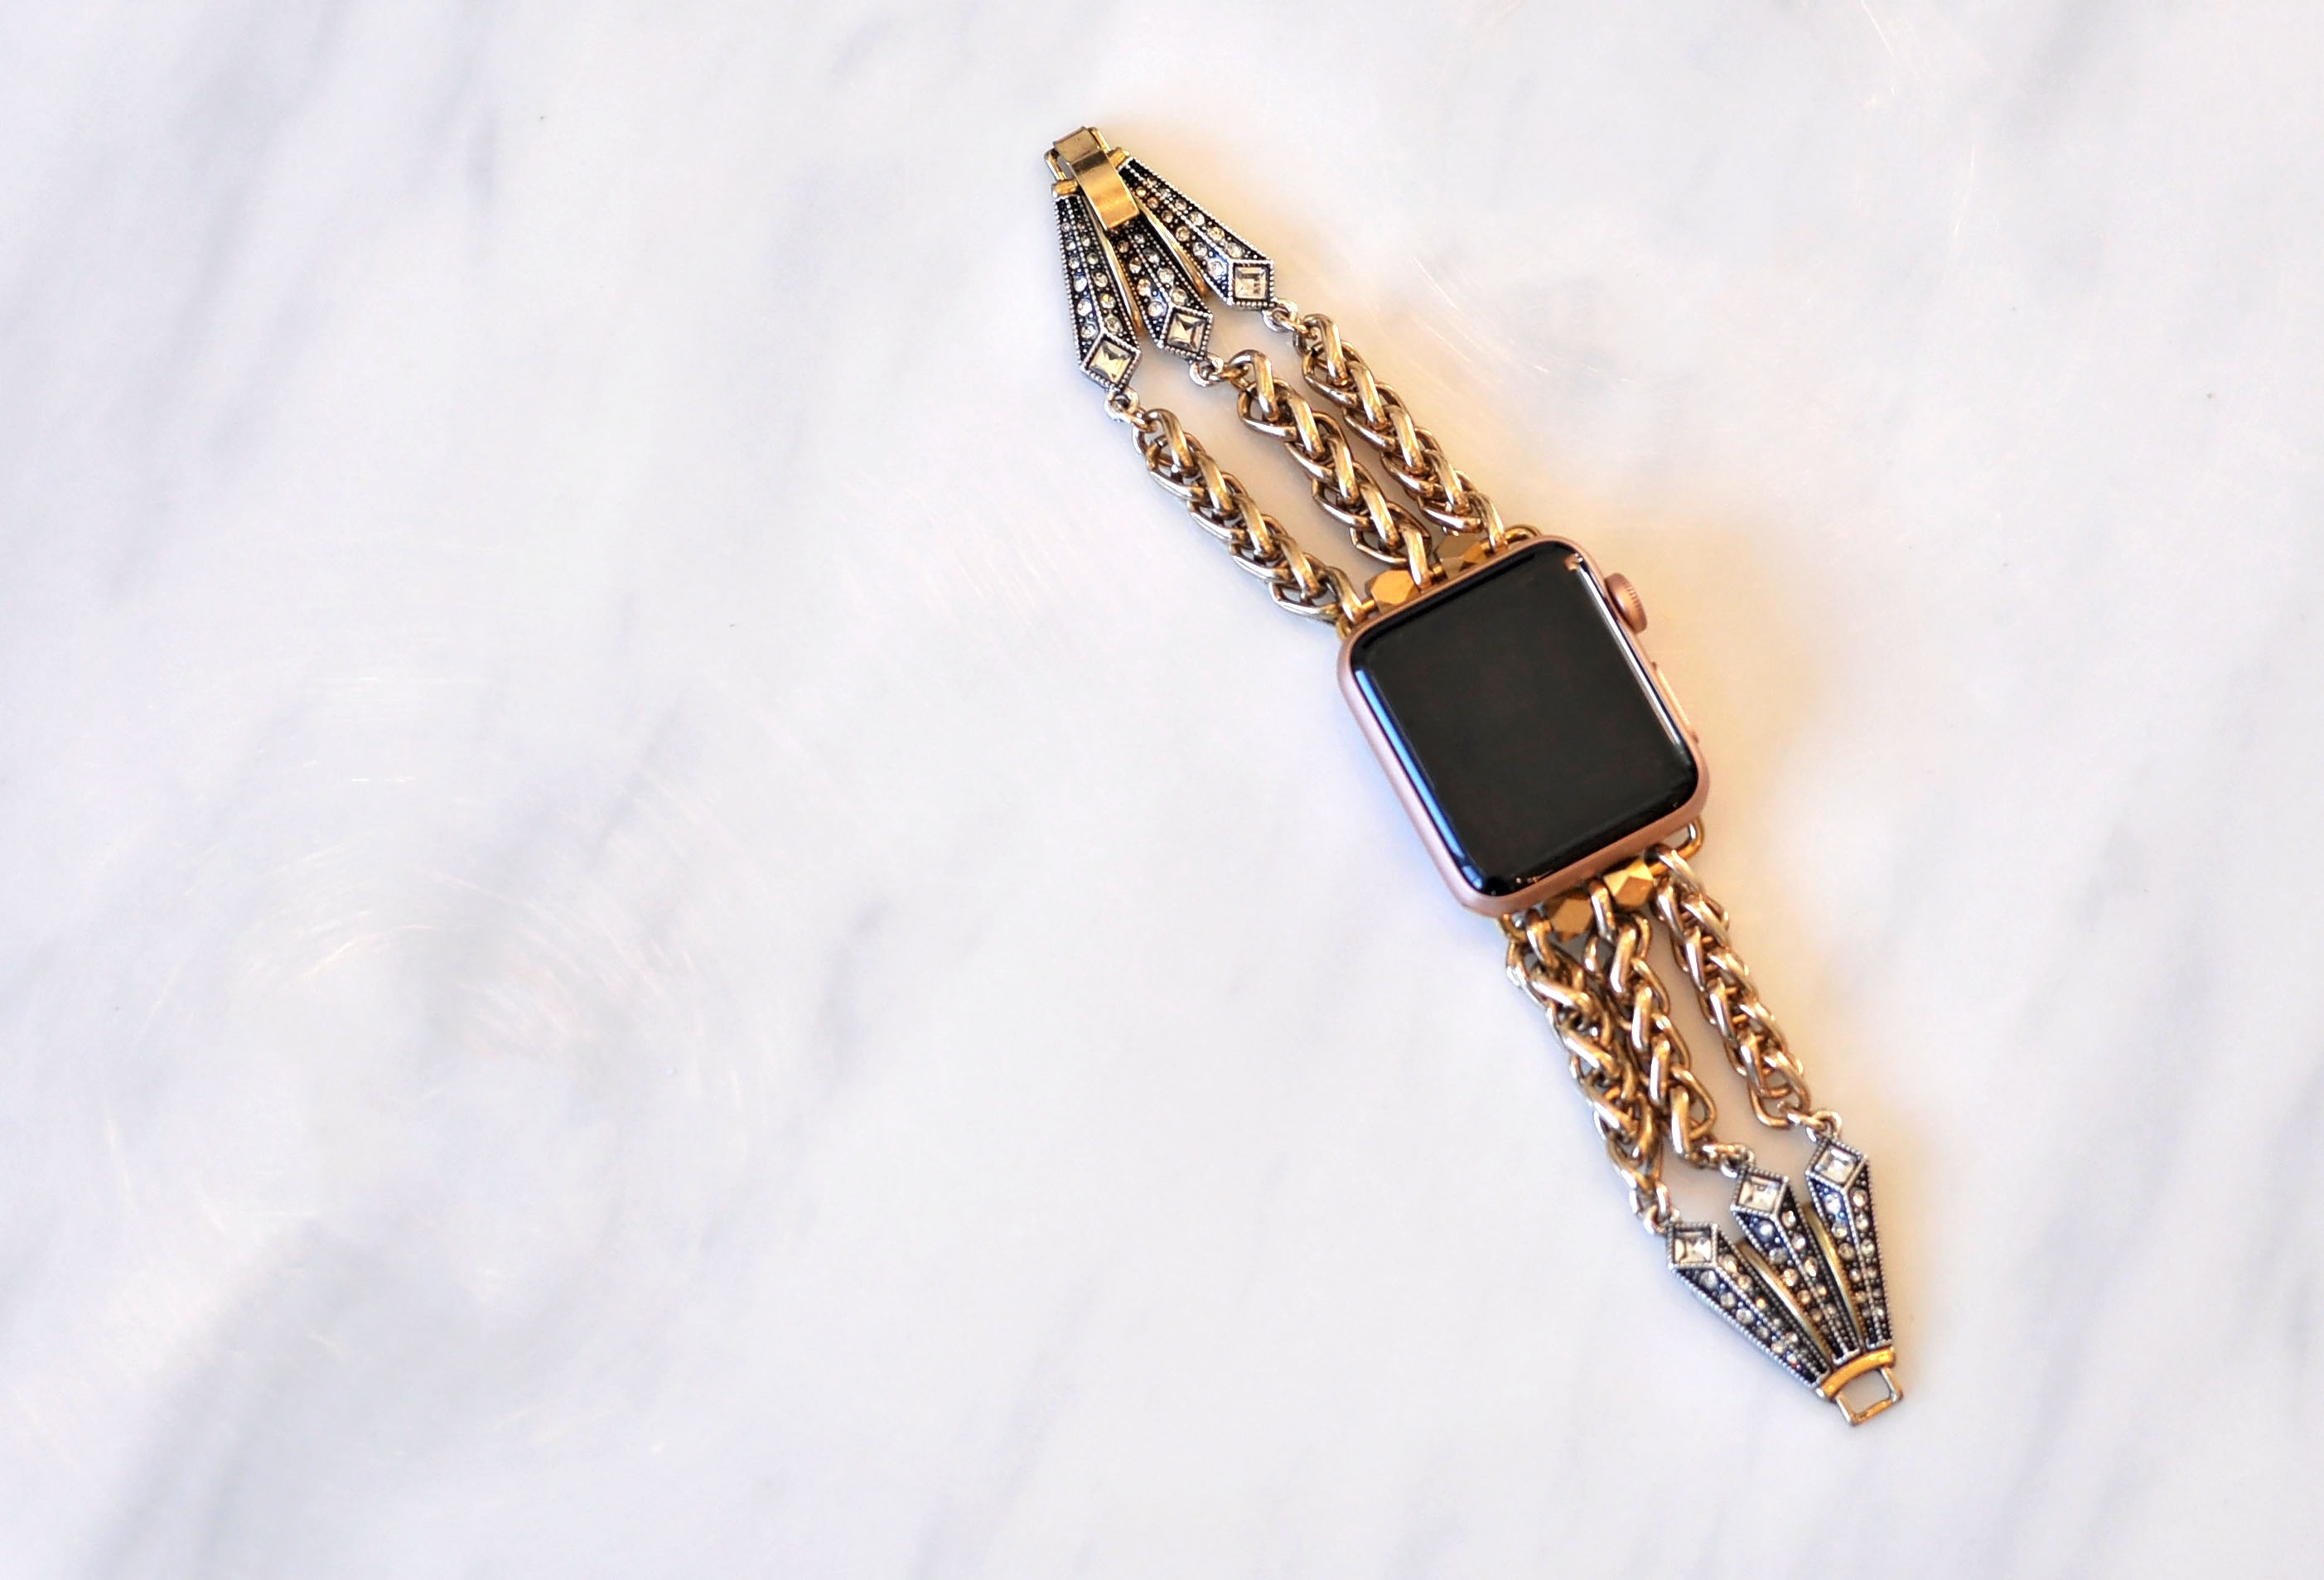 Fashion apple watch band for women. I didn't even know such a pretty band existed. What a great gift idea! Plus, a 20% off promo code on this site.